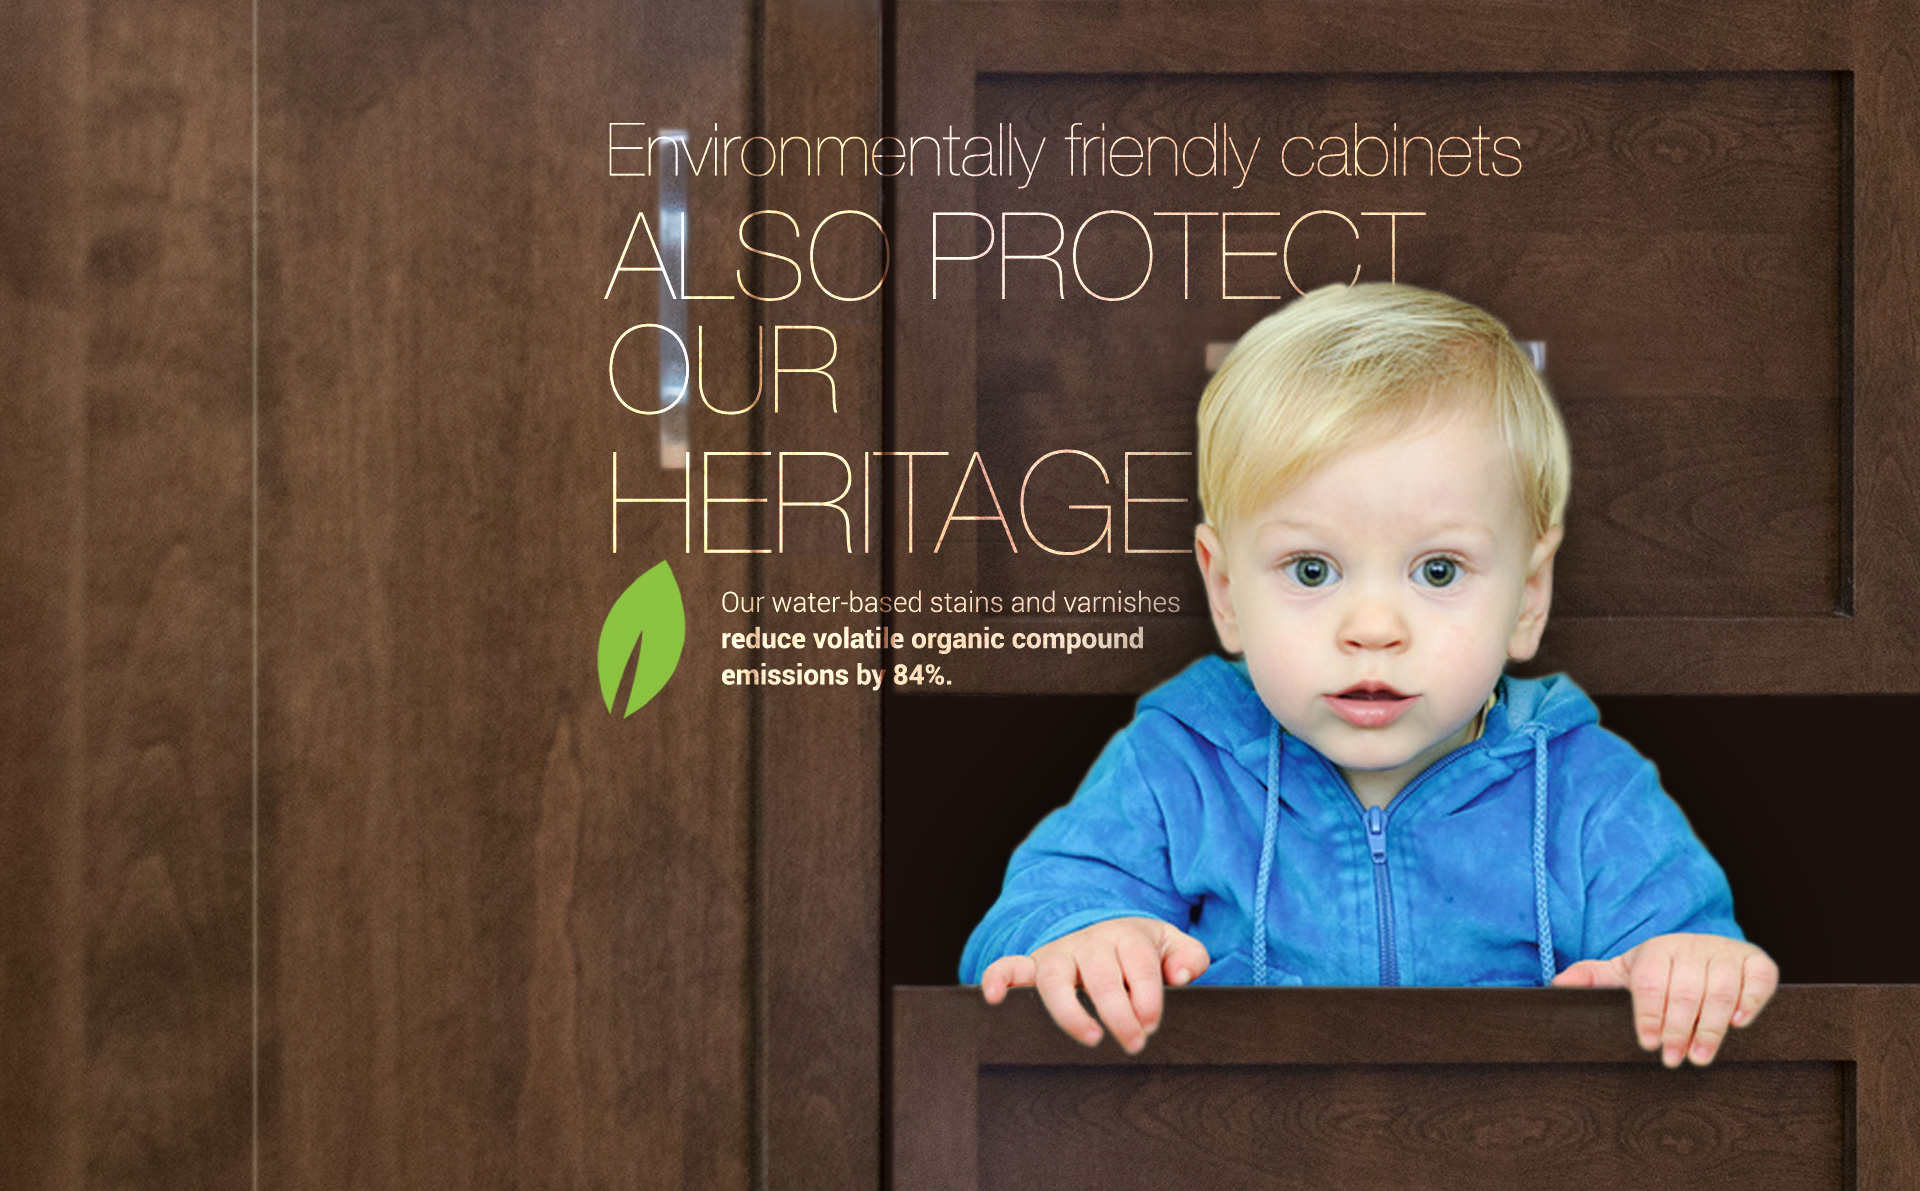 Water-based stain - Environmentally friendly cabinets also protect our heritage